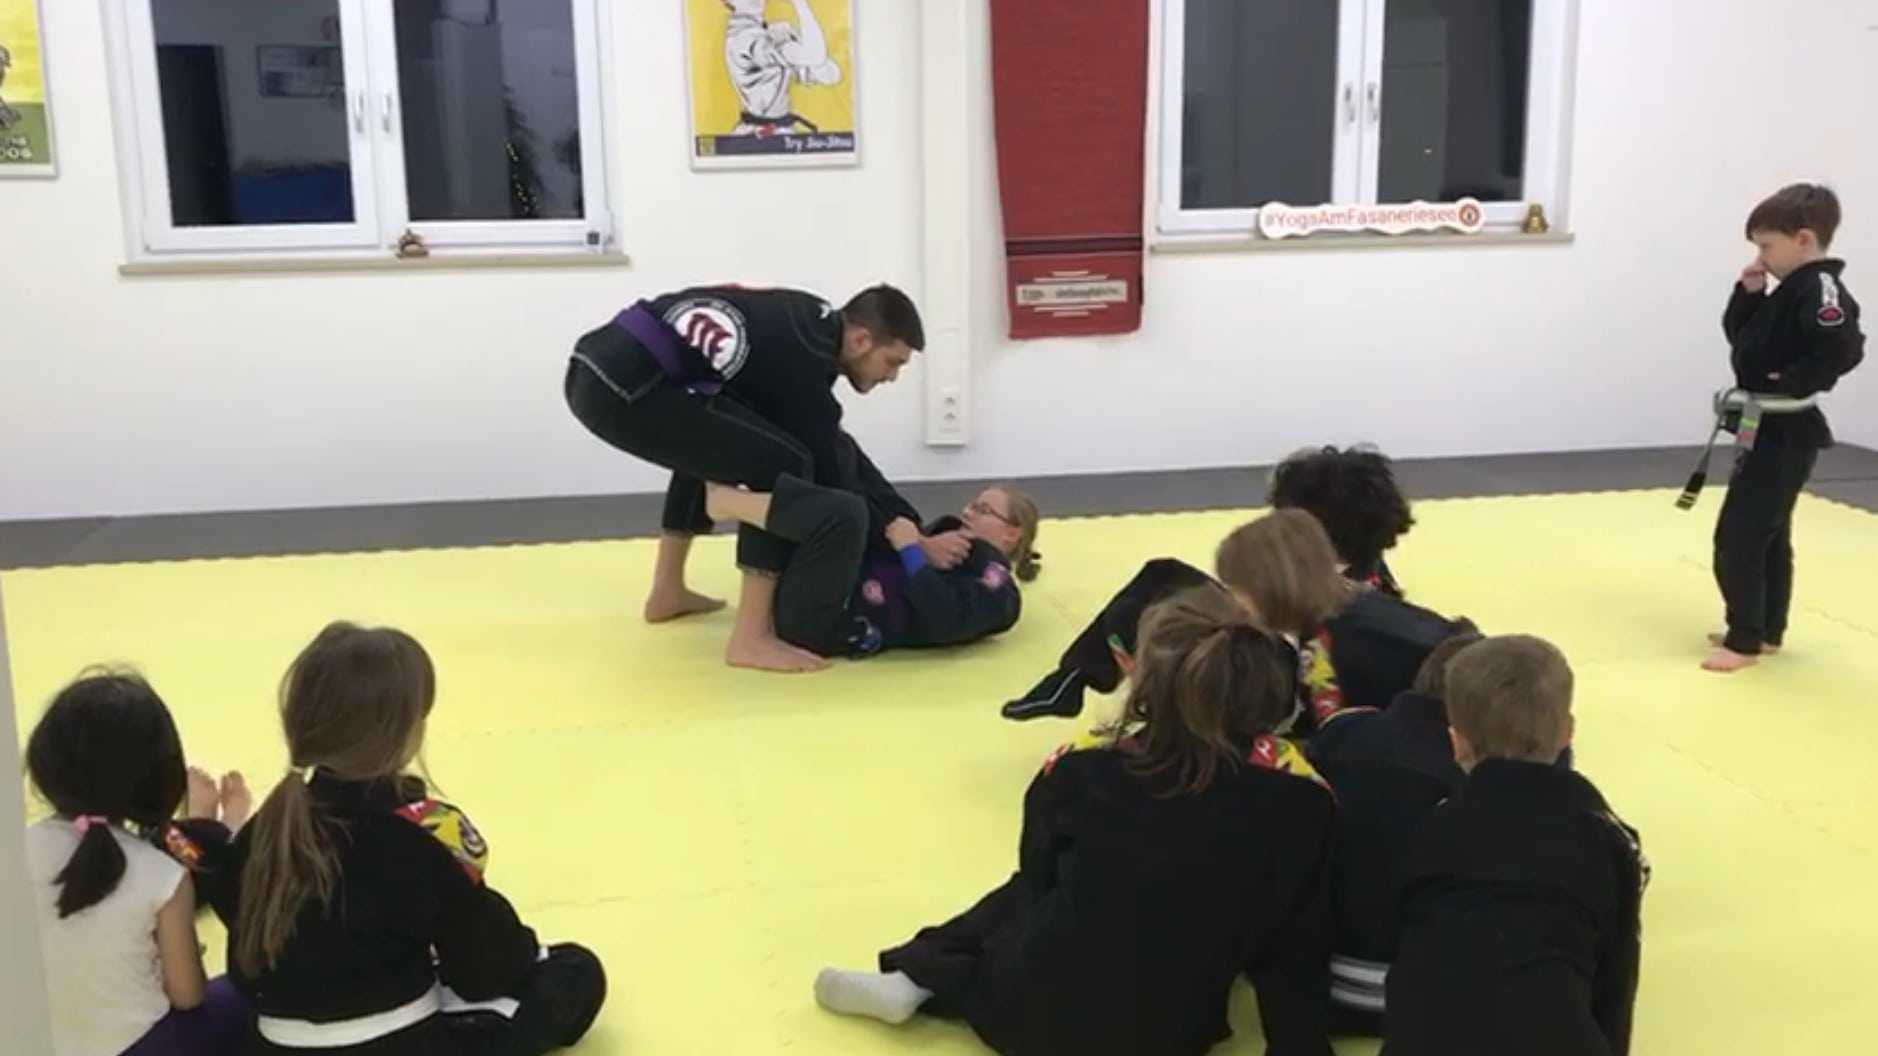 On how to make Mr. Danaher's BJJ concepts and systems accessible for kids